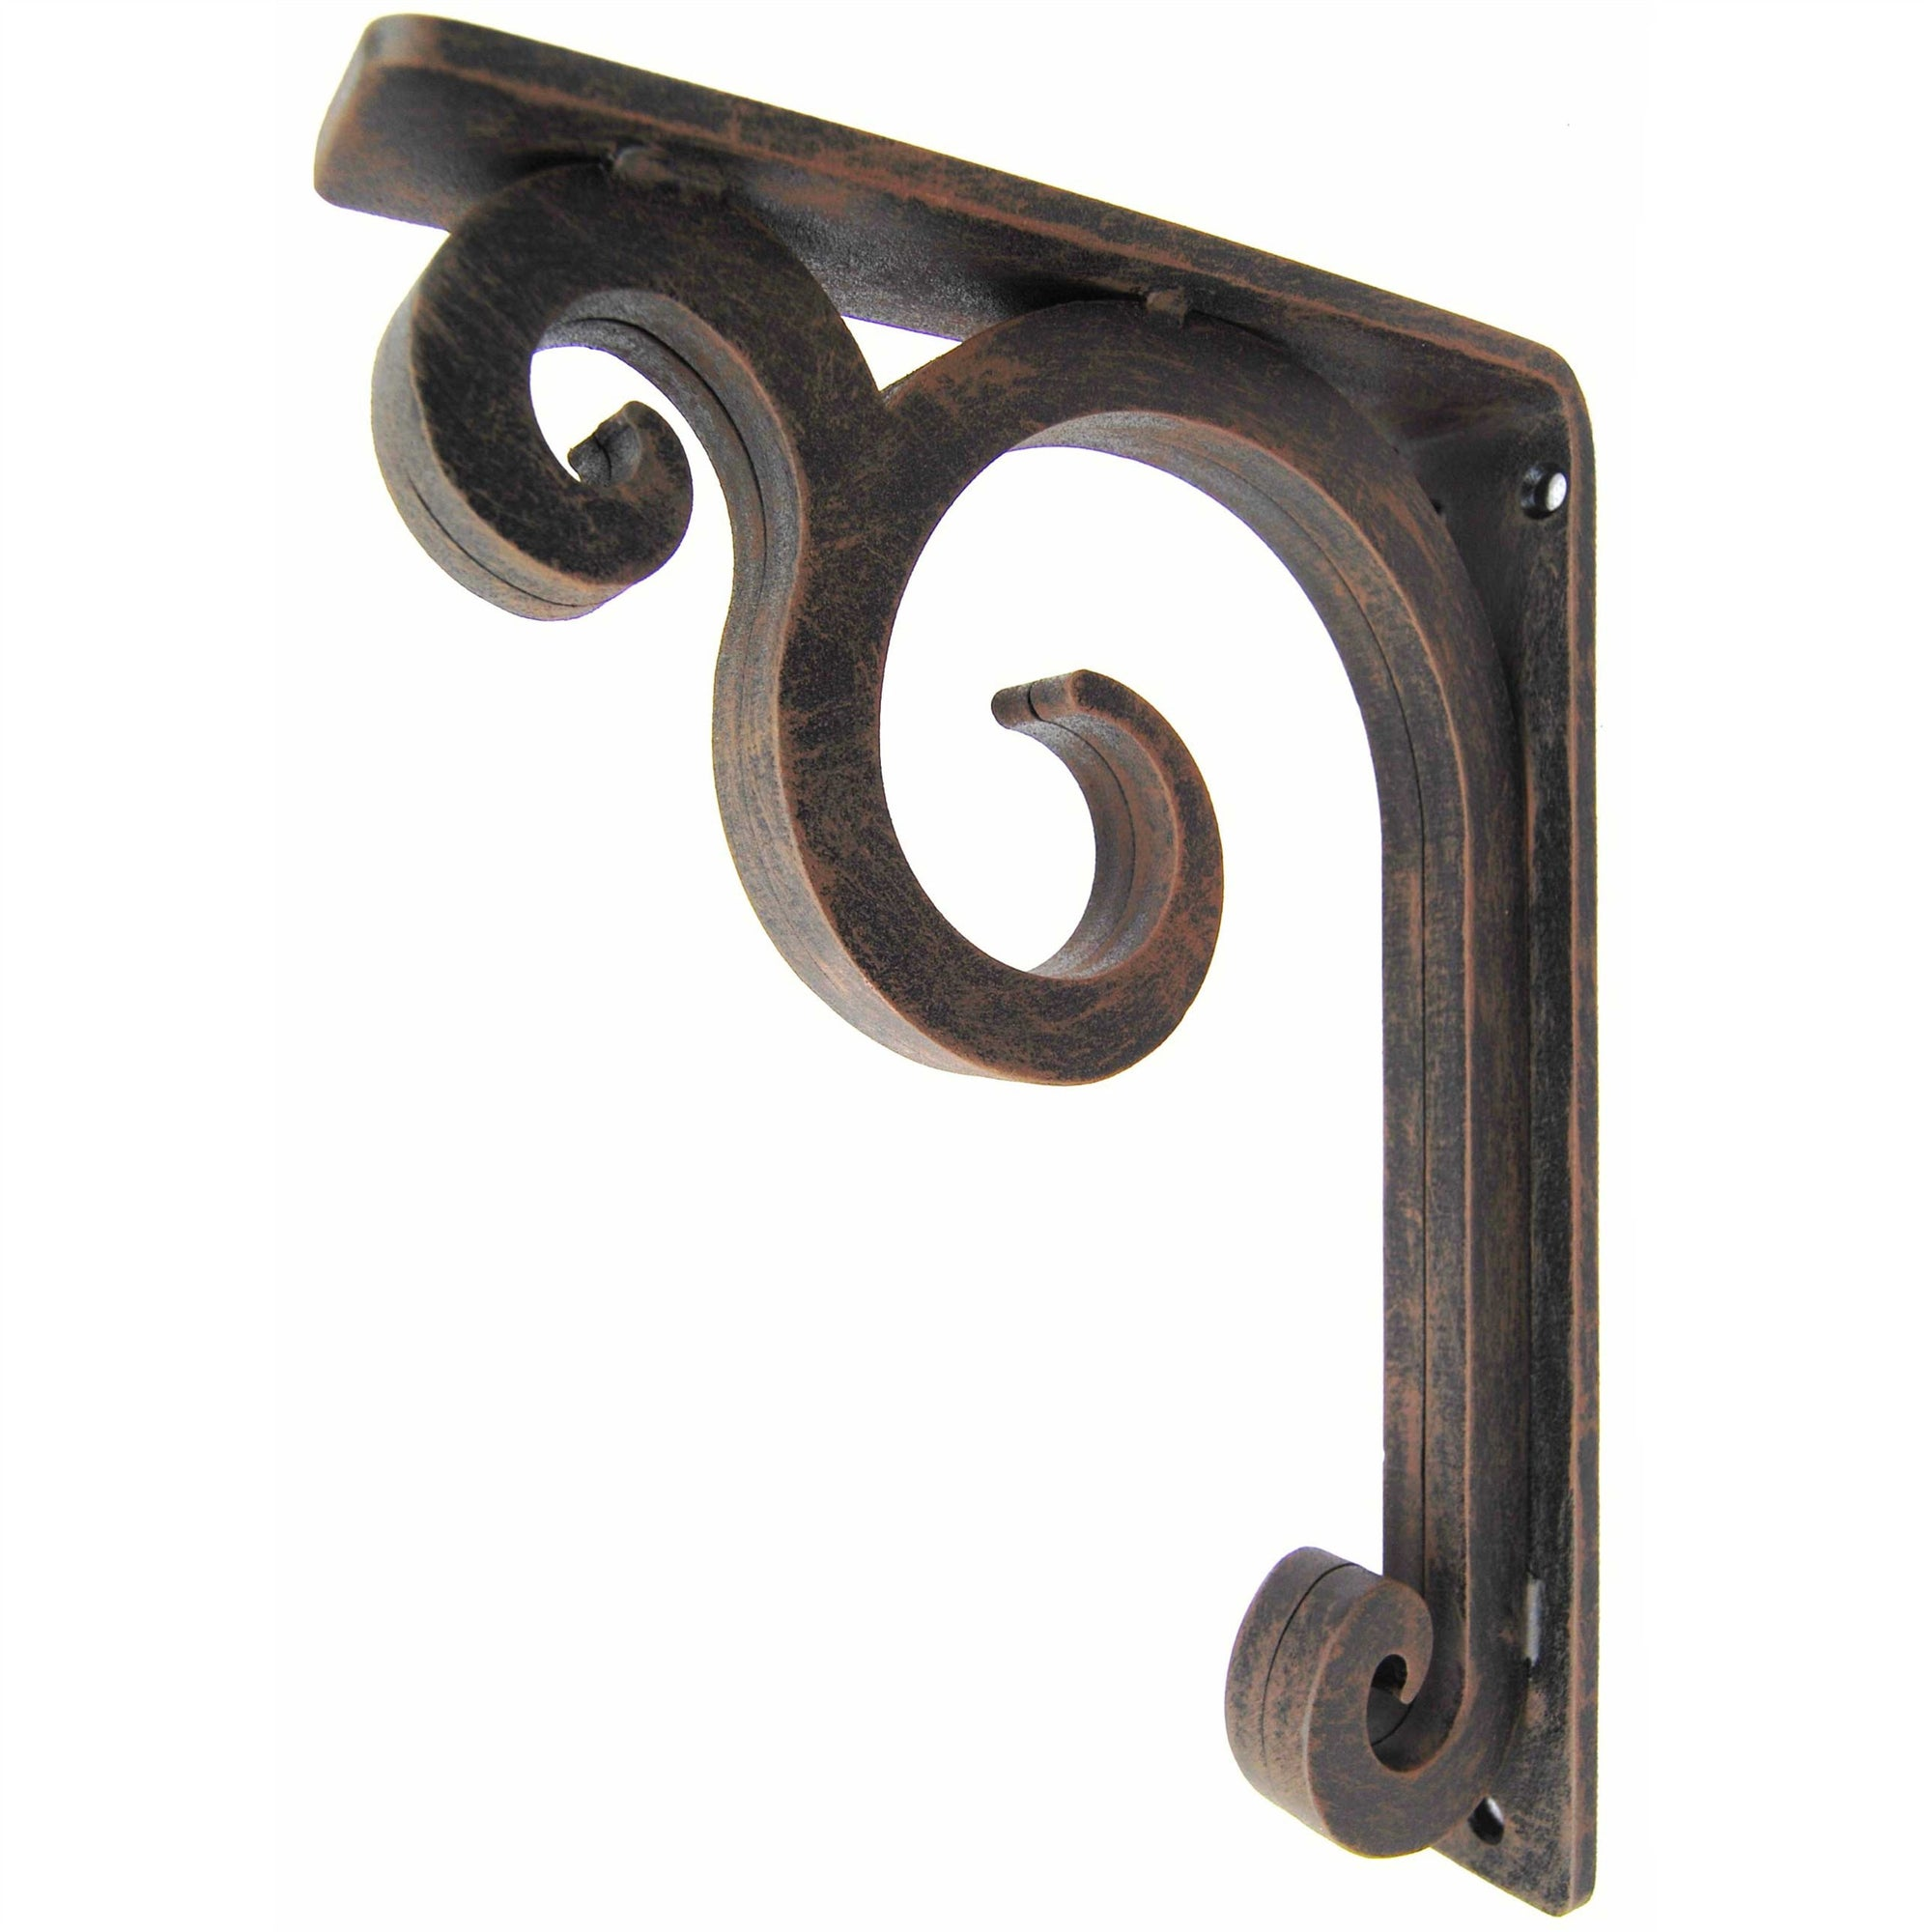 THis is our 1.5inch wide Keaton Iron Corbel with the Old World Finish.